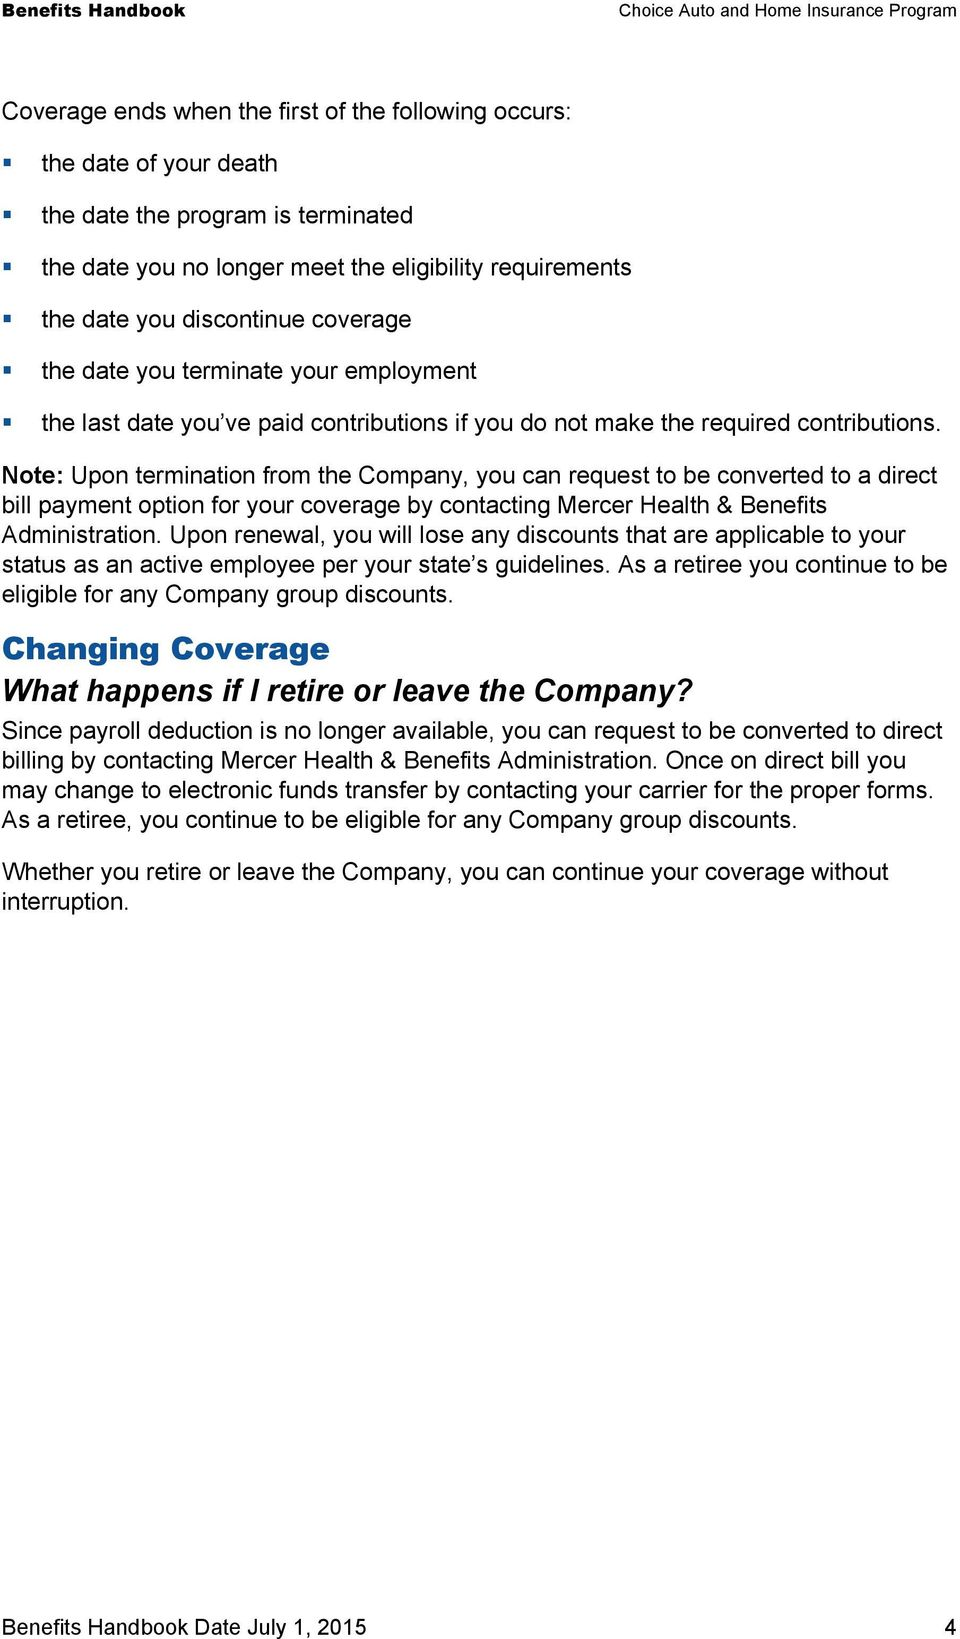 Note: Upon termination from the Company, you can request to be converted to a direct bill payment option for your coverage by contacting Mercer Health & Benefits Administration.